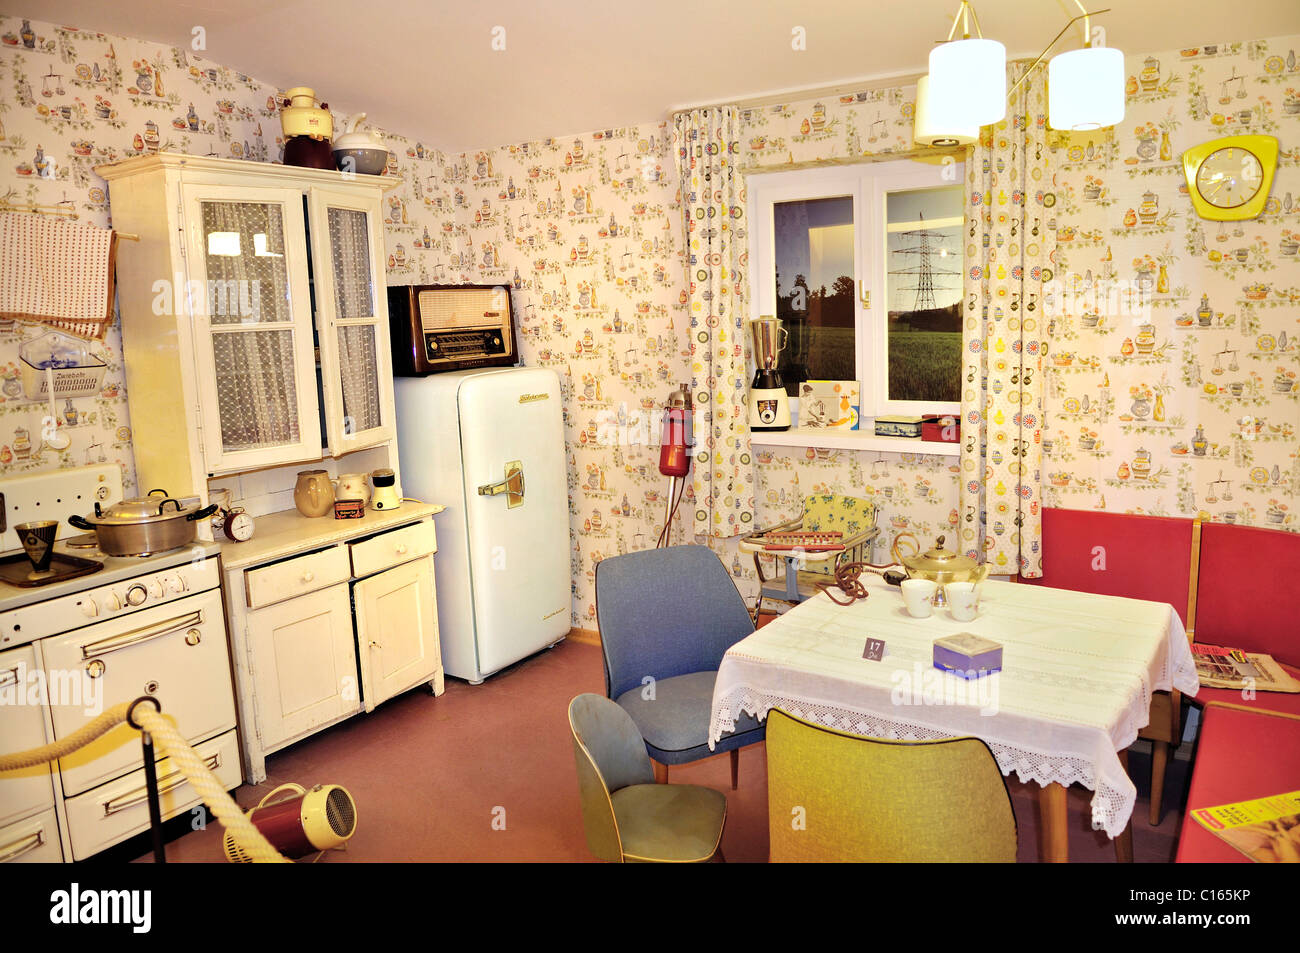 1950 Kitchen Stockfotos & 1950 Kitchen Bilder - Alamy